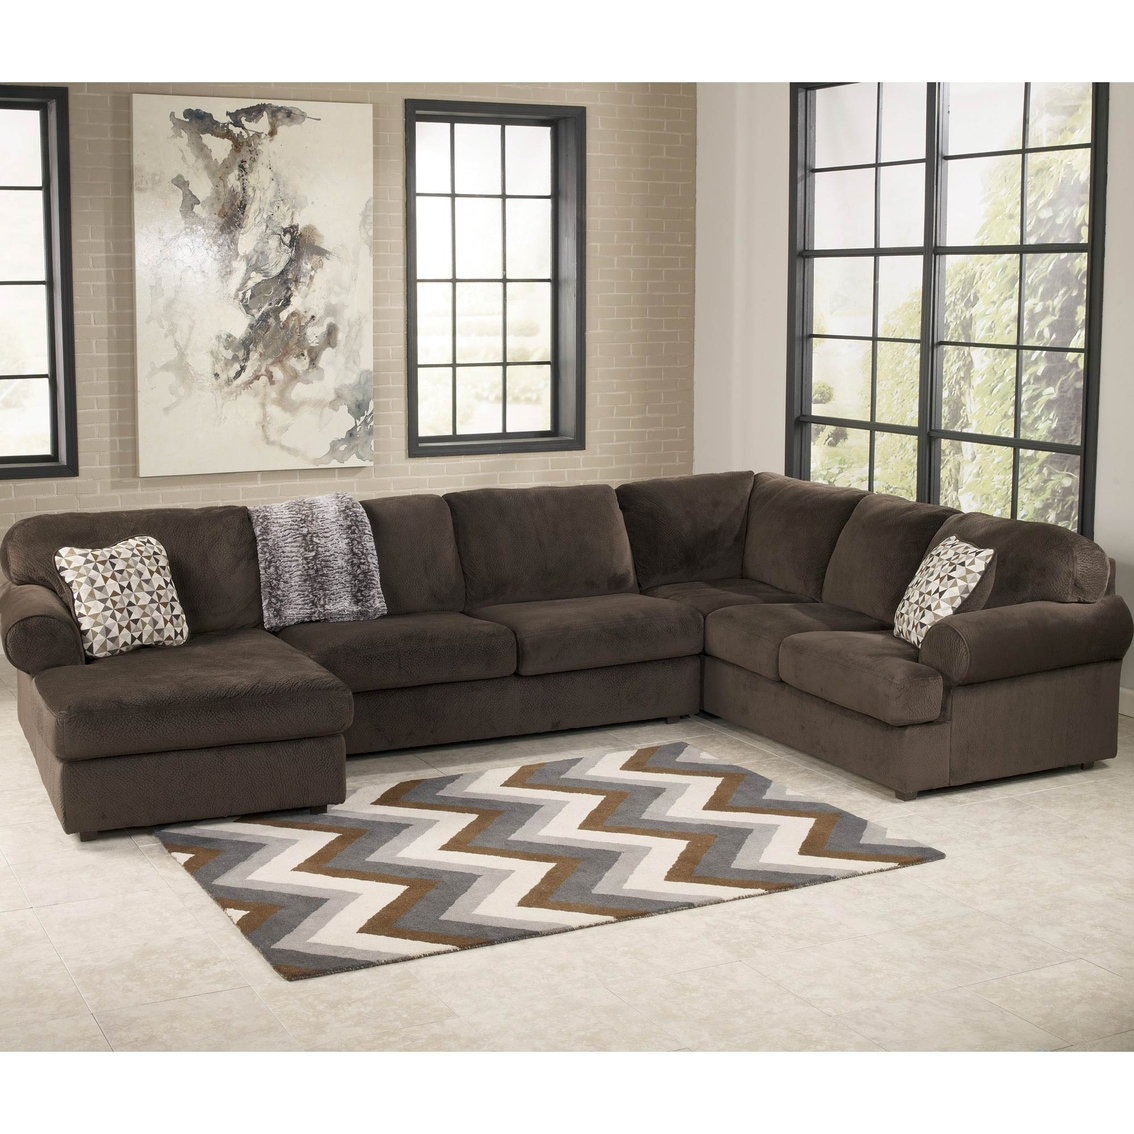 Signature design by ashley jessa place 3 pc sectional for Sectional sofas room place